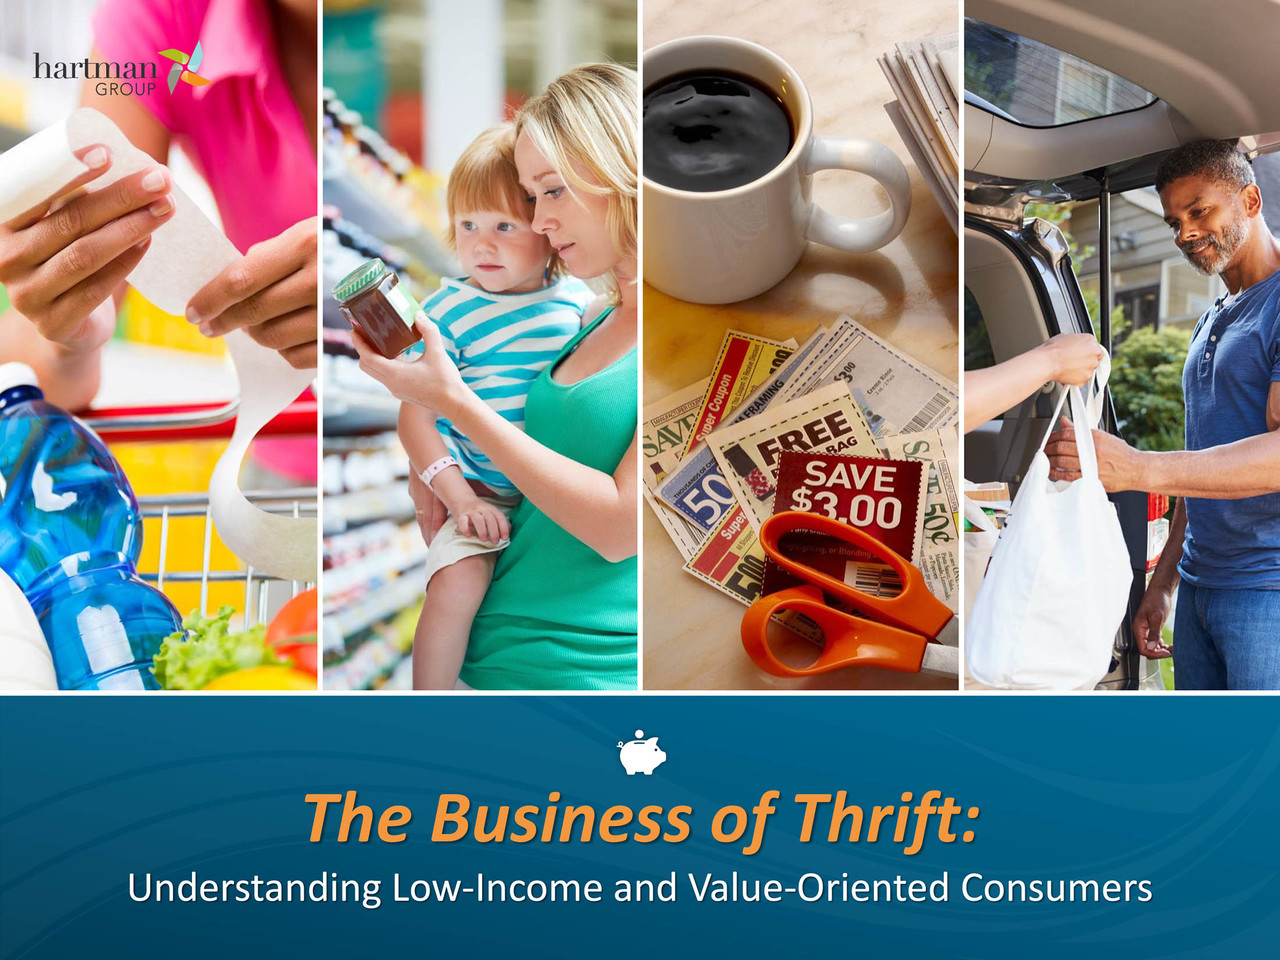 The Business of Thrift 2018: Understanding Today's Value-Oriented and Low-Income Consumers